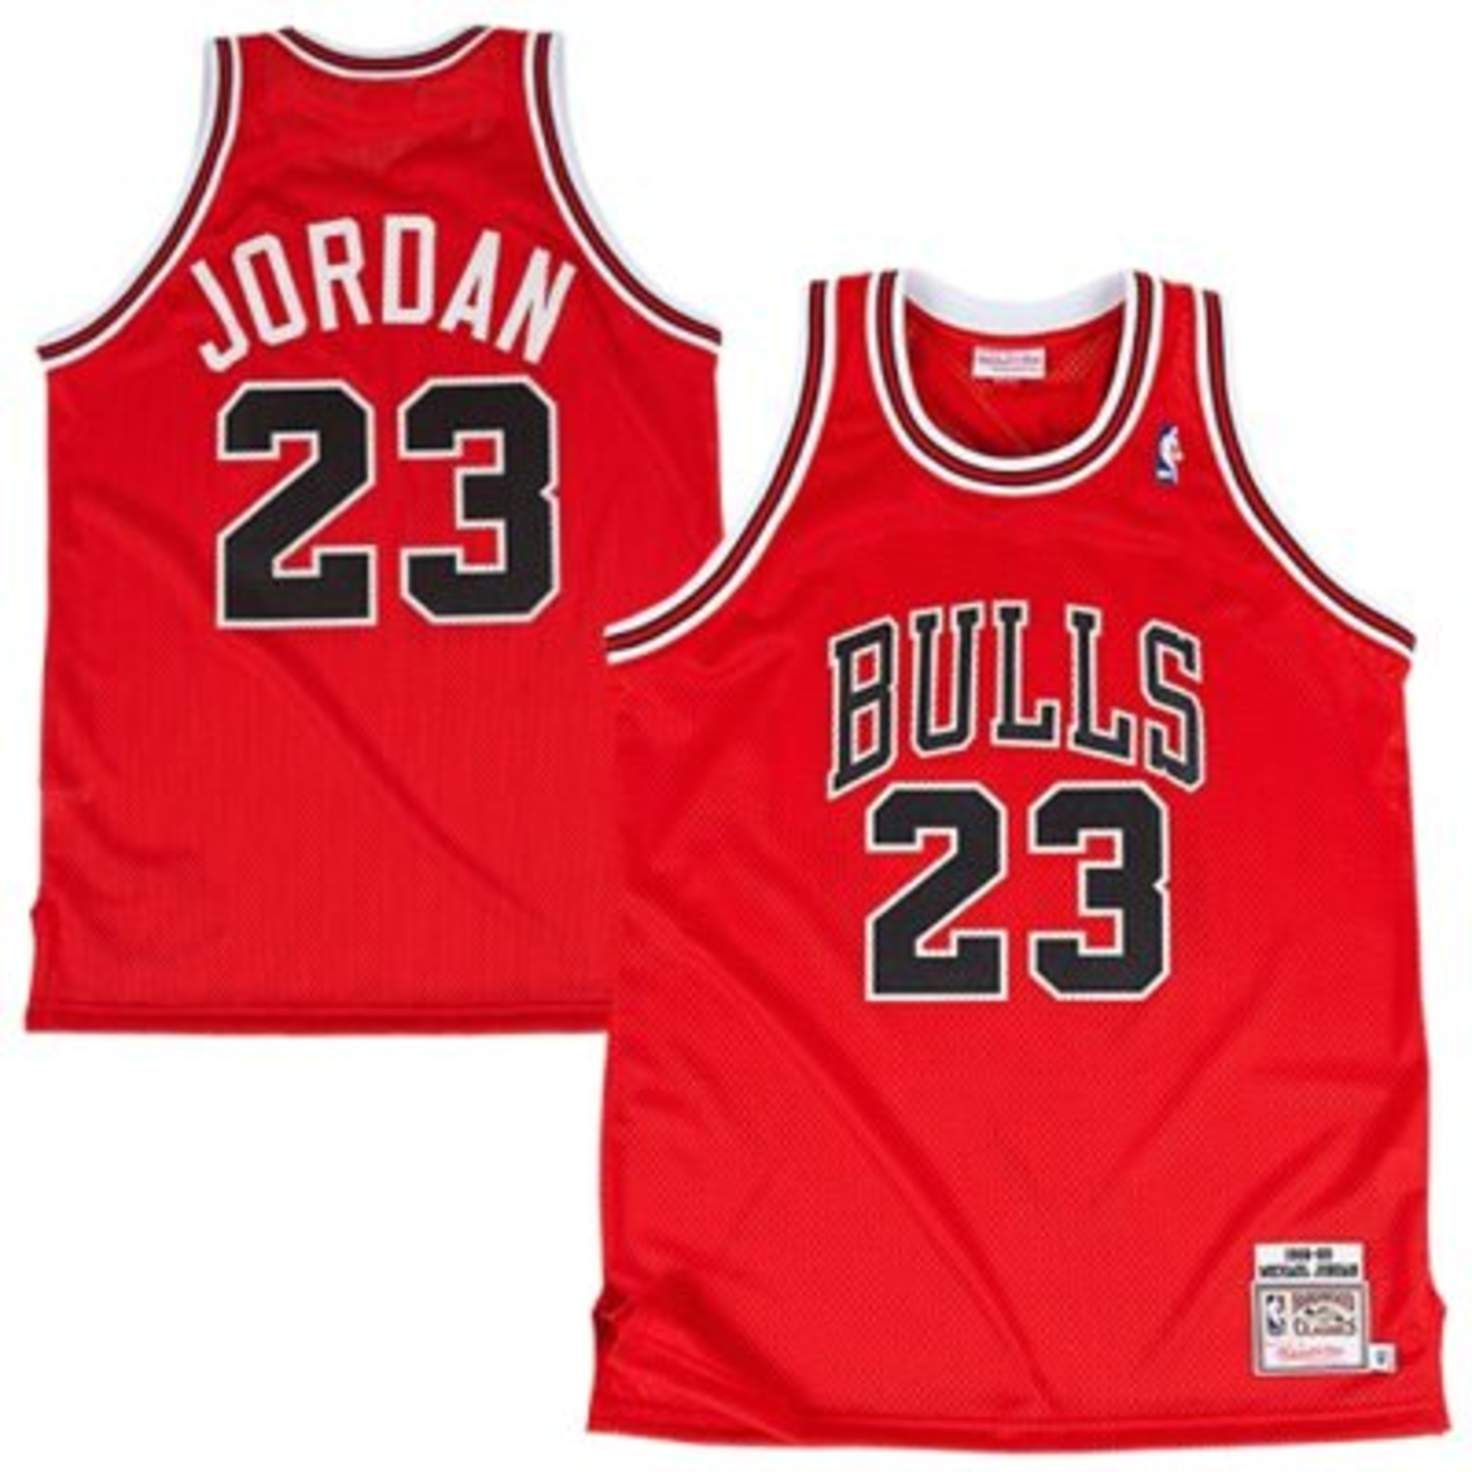 41121cdff4b Mens Mitchell & Ness Michael Jordan Red Chicago Bulls 1988-89 The Shot  Hardwood Classics Authentic Vintage Jersey